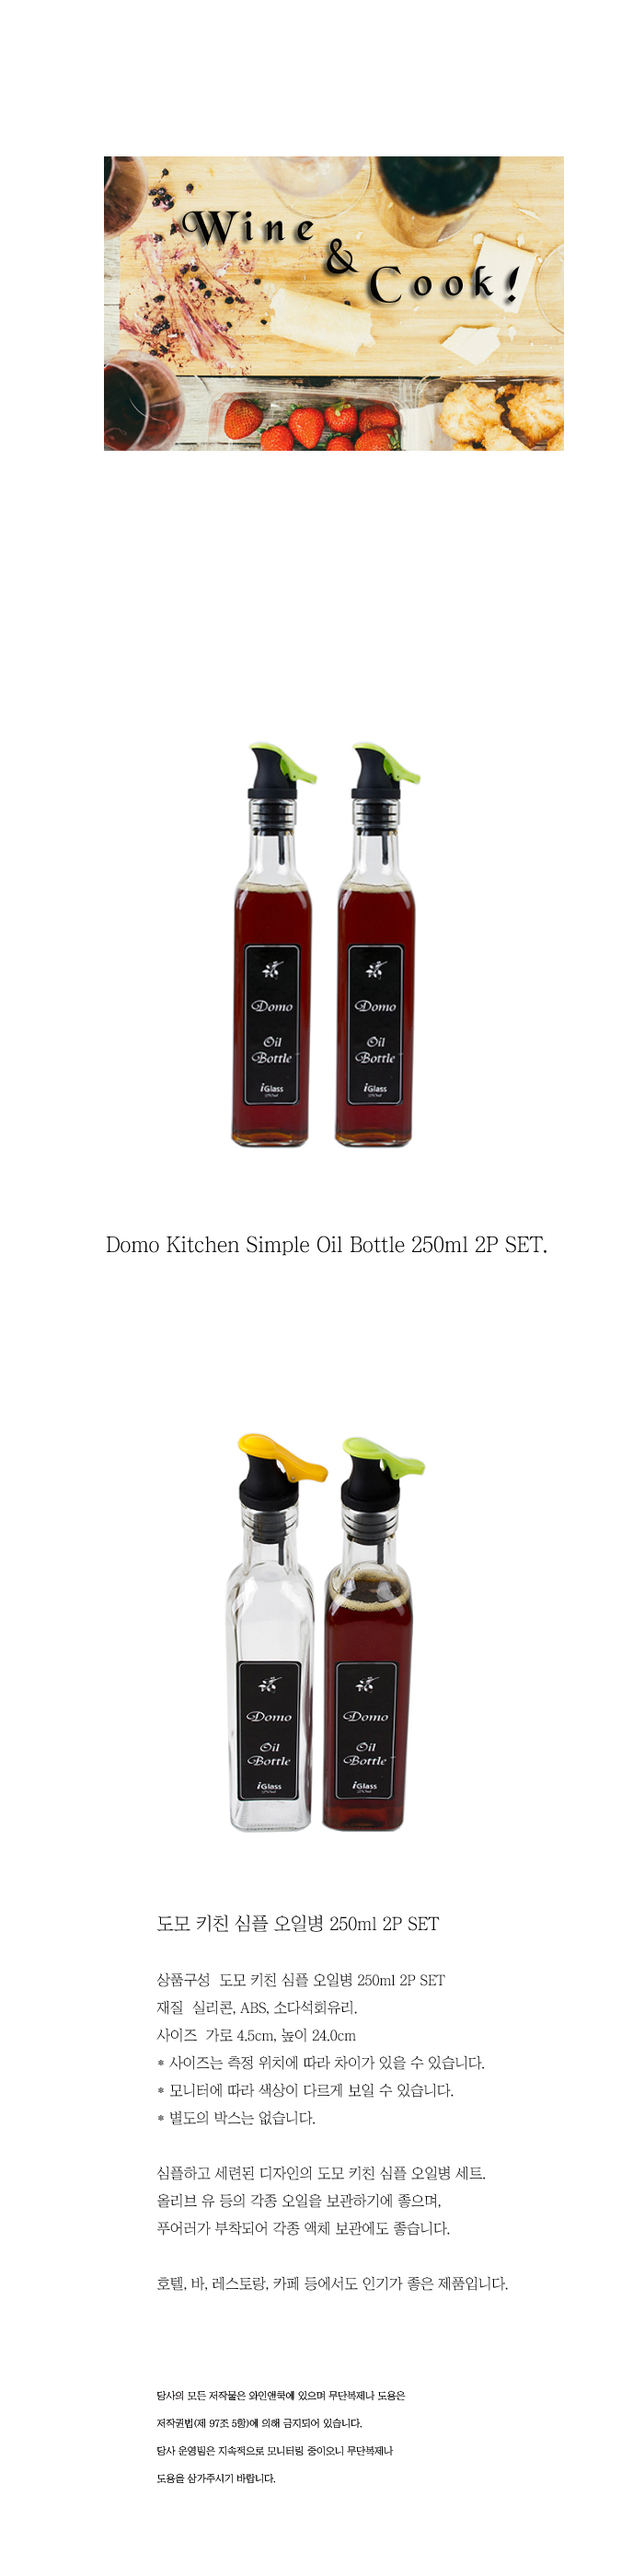 [ WINEQOK ] Domo Kitchen Simple Oil Glass 250ml 2P SET